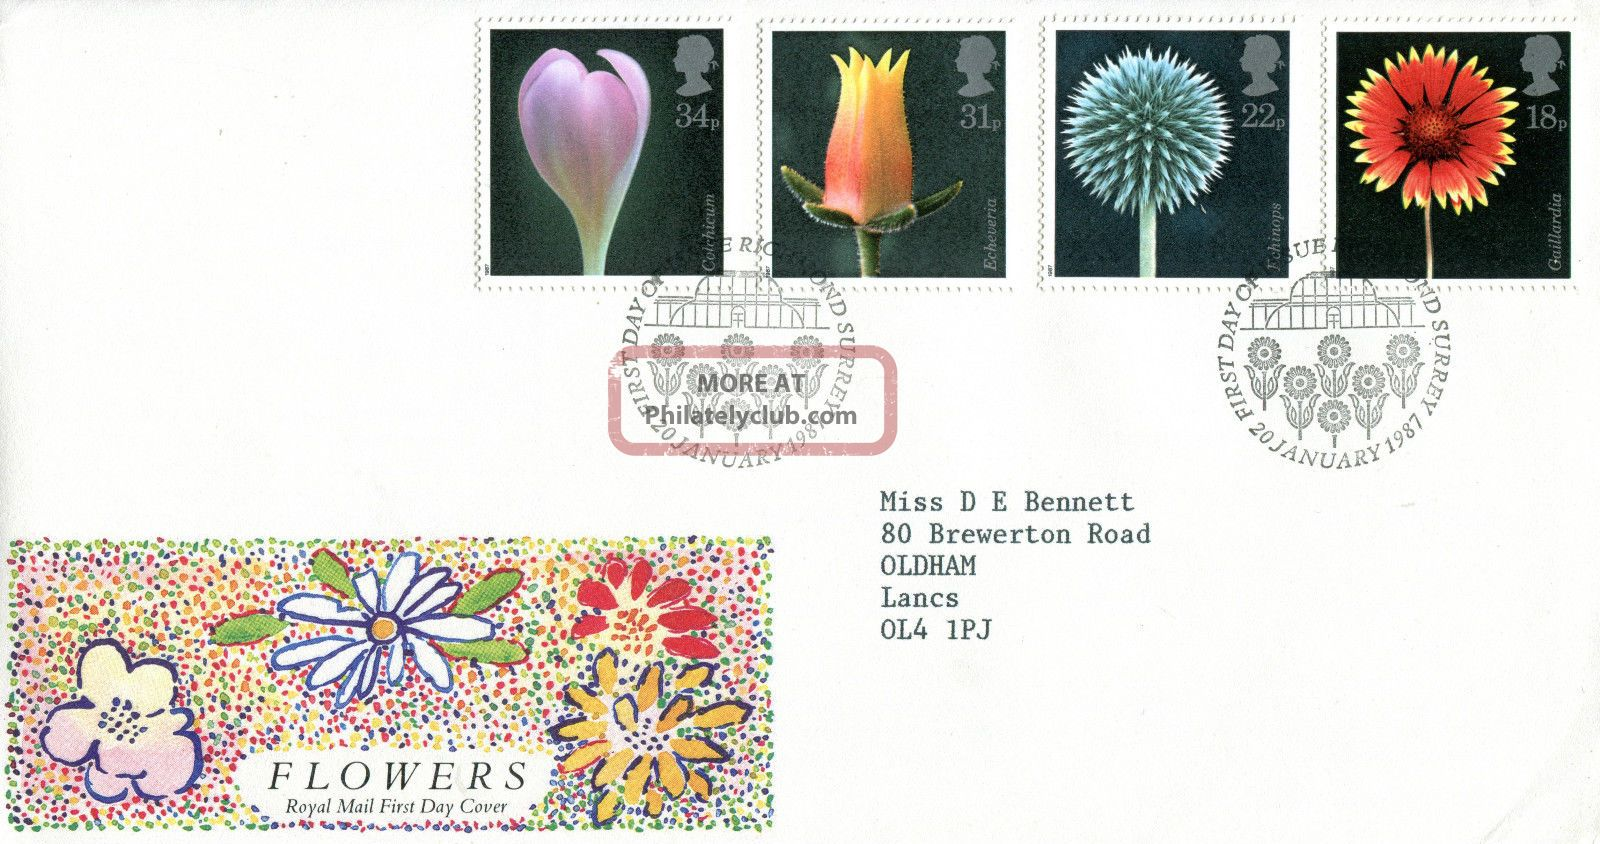 20 January 1987 Flowers Royal Mail First Day Cover Kew Richmond Shs (w) Topical Stamps photo